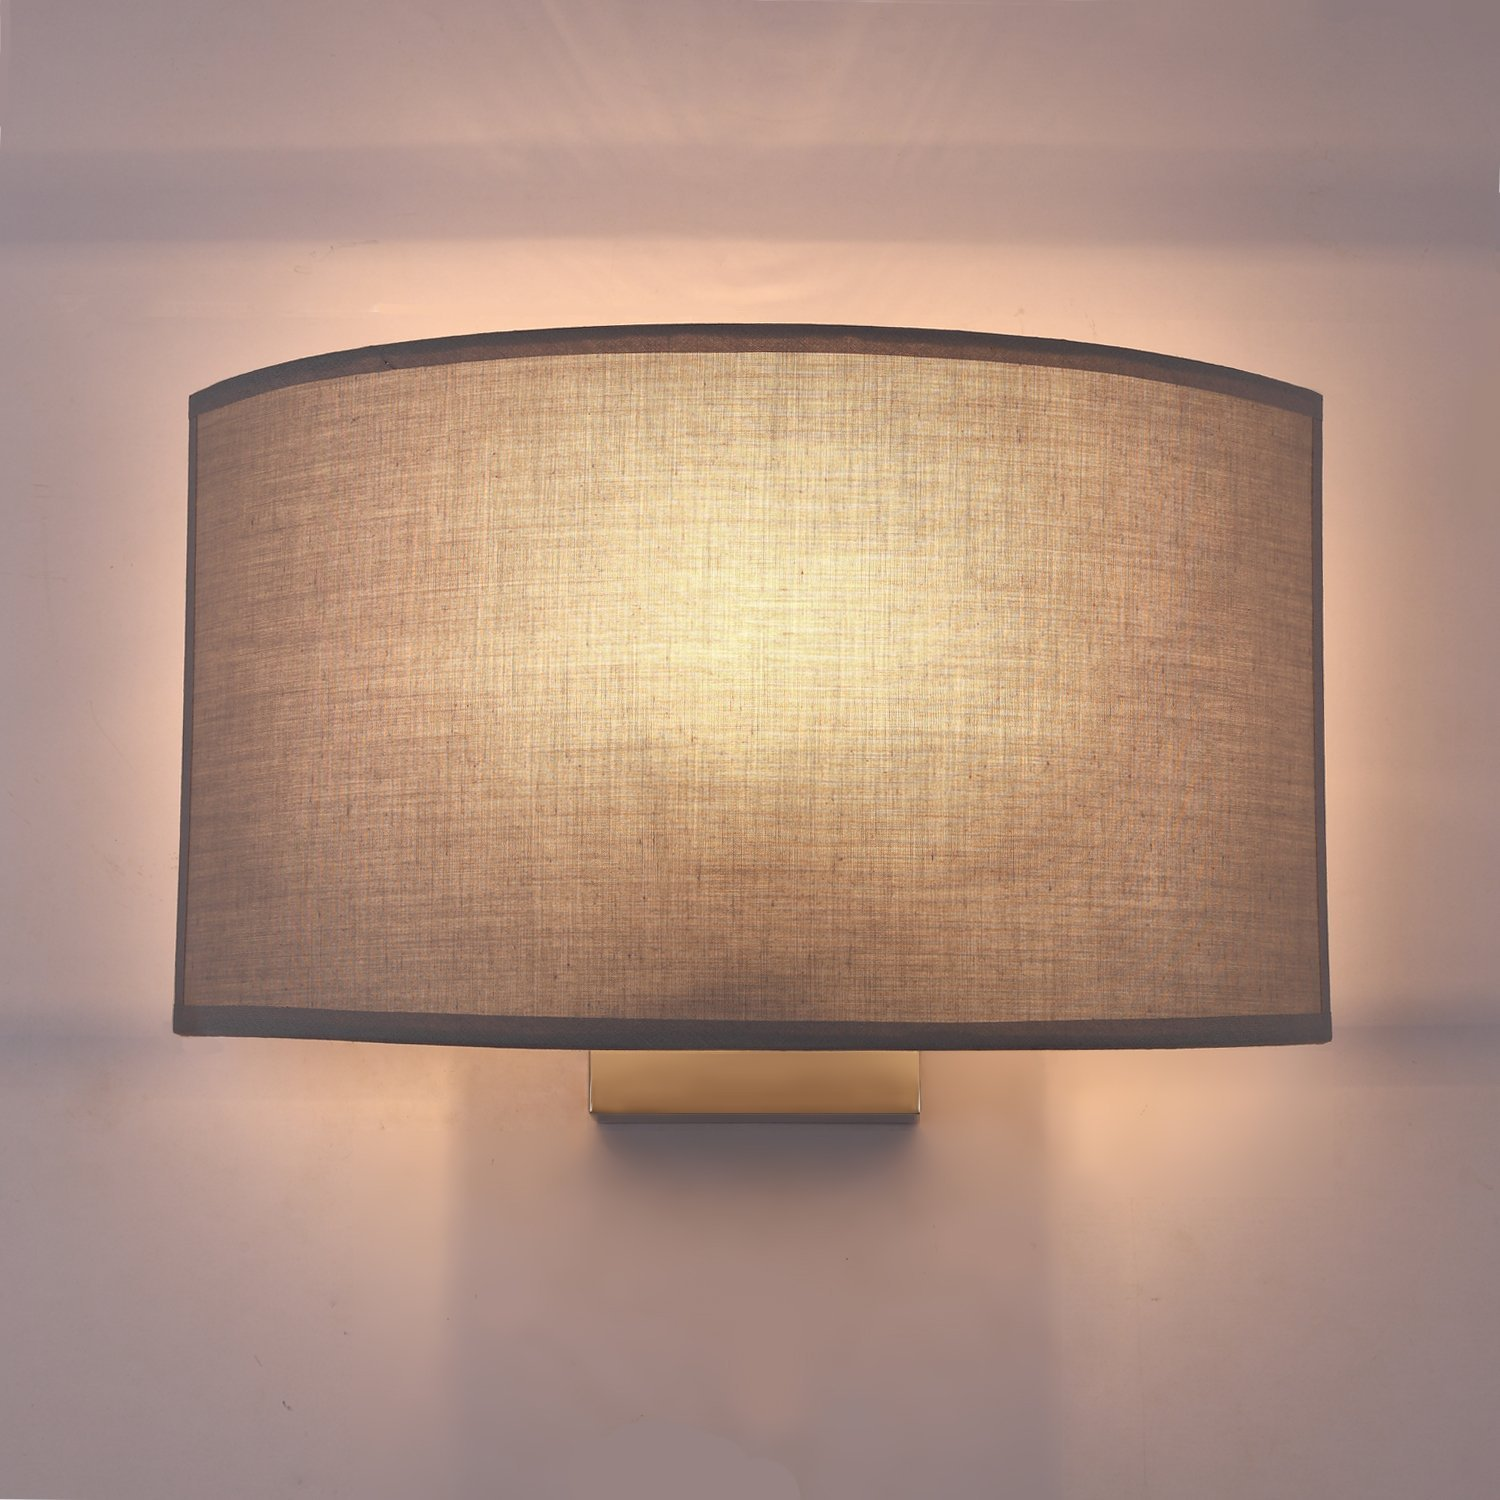 SPARKSOR Wall Light, Minimalist Wall Sconces 1 Light Chrome and Fabric Shade, fit for Bedroom, Living Room, Baby Room